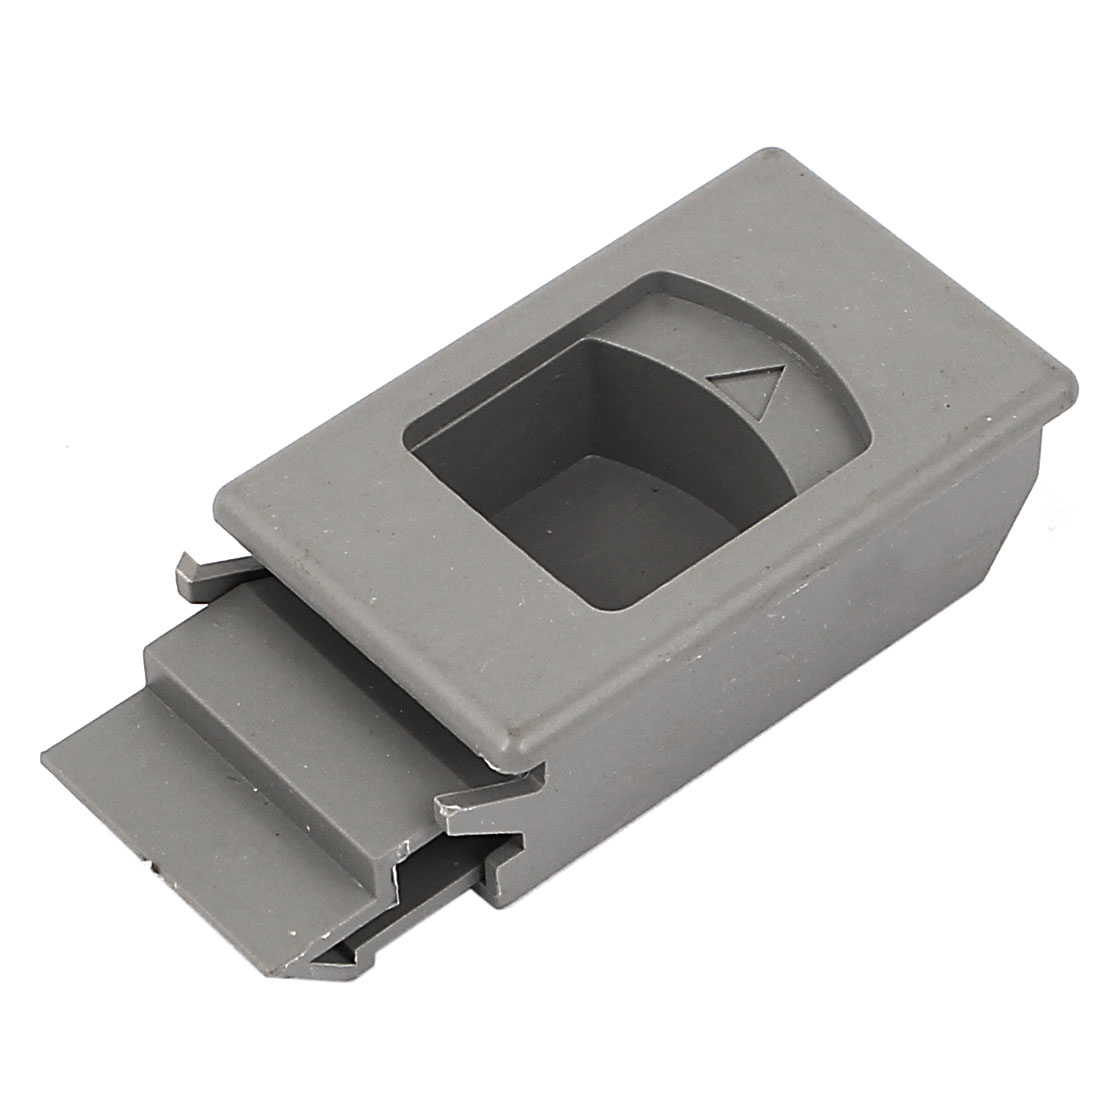 Window Door Inside Pull Rectangular Plastic Slide Latch Gray 61mm Long